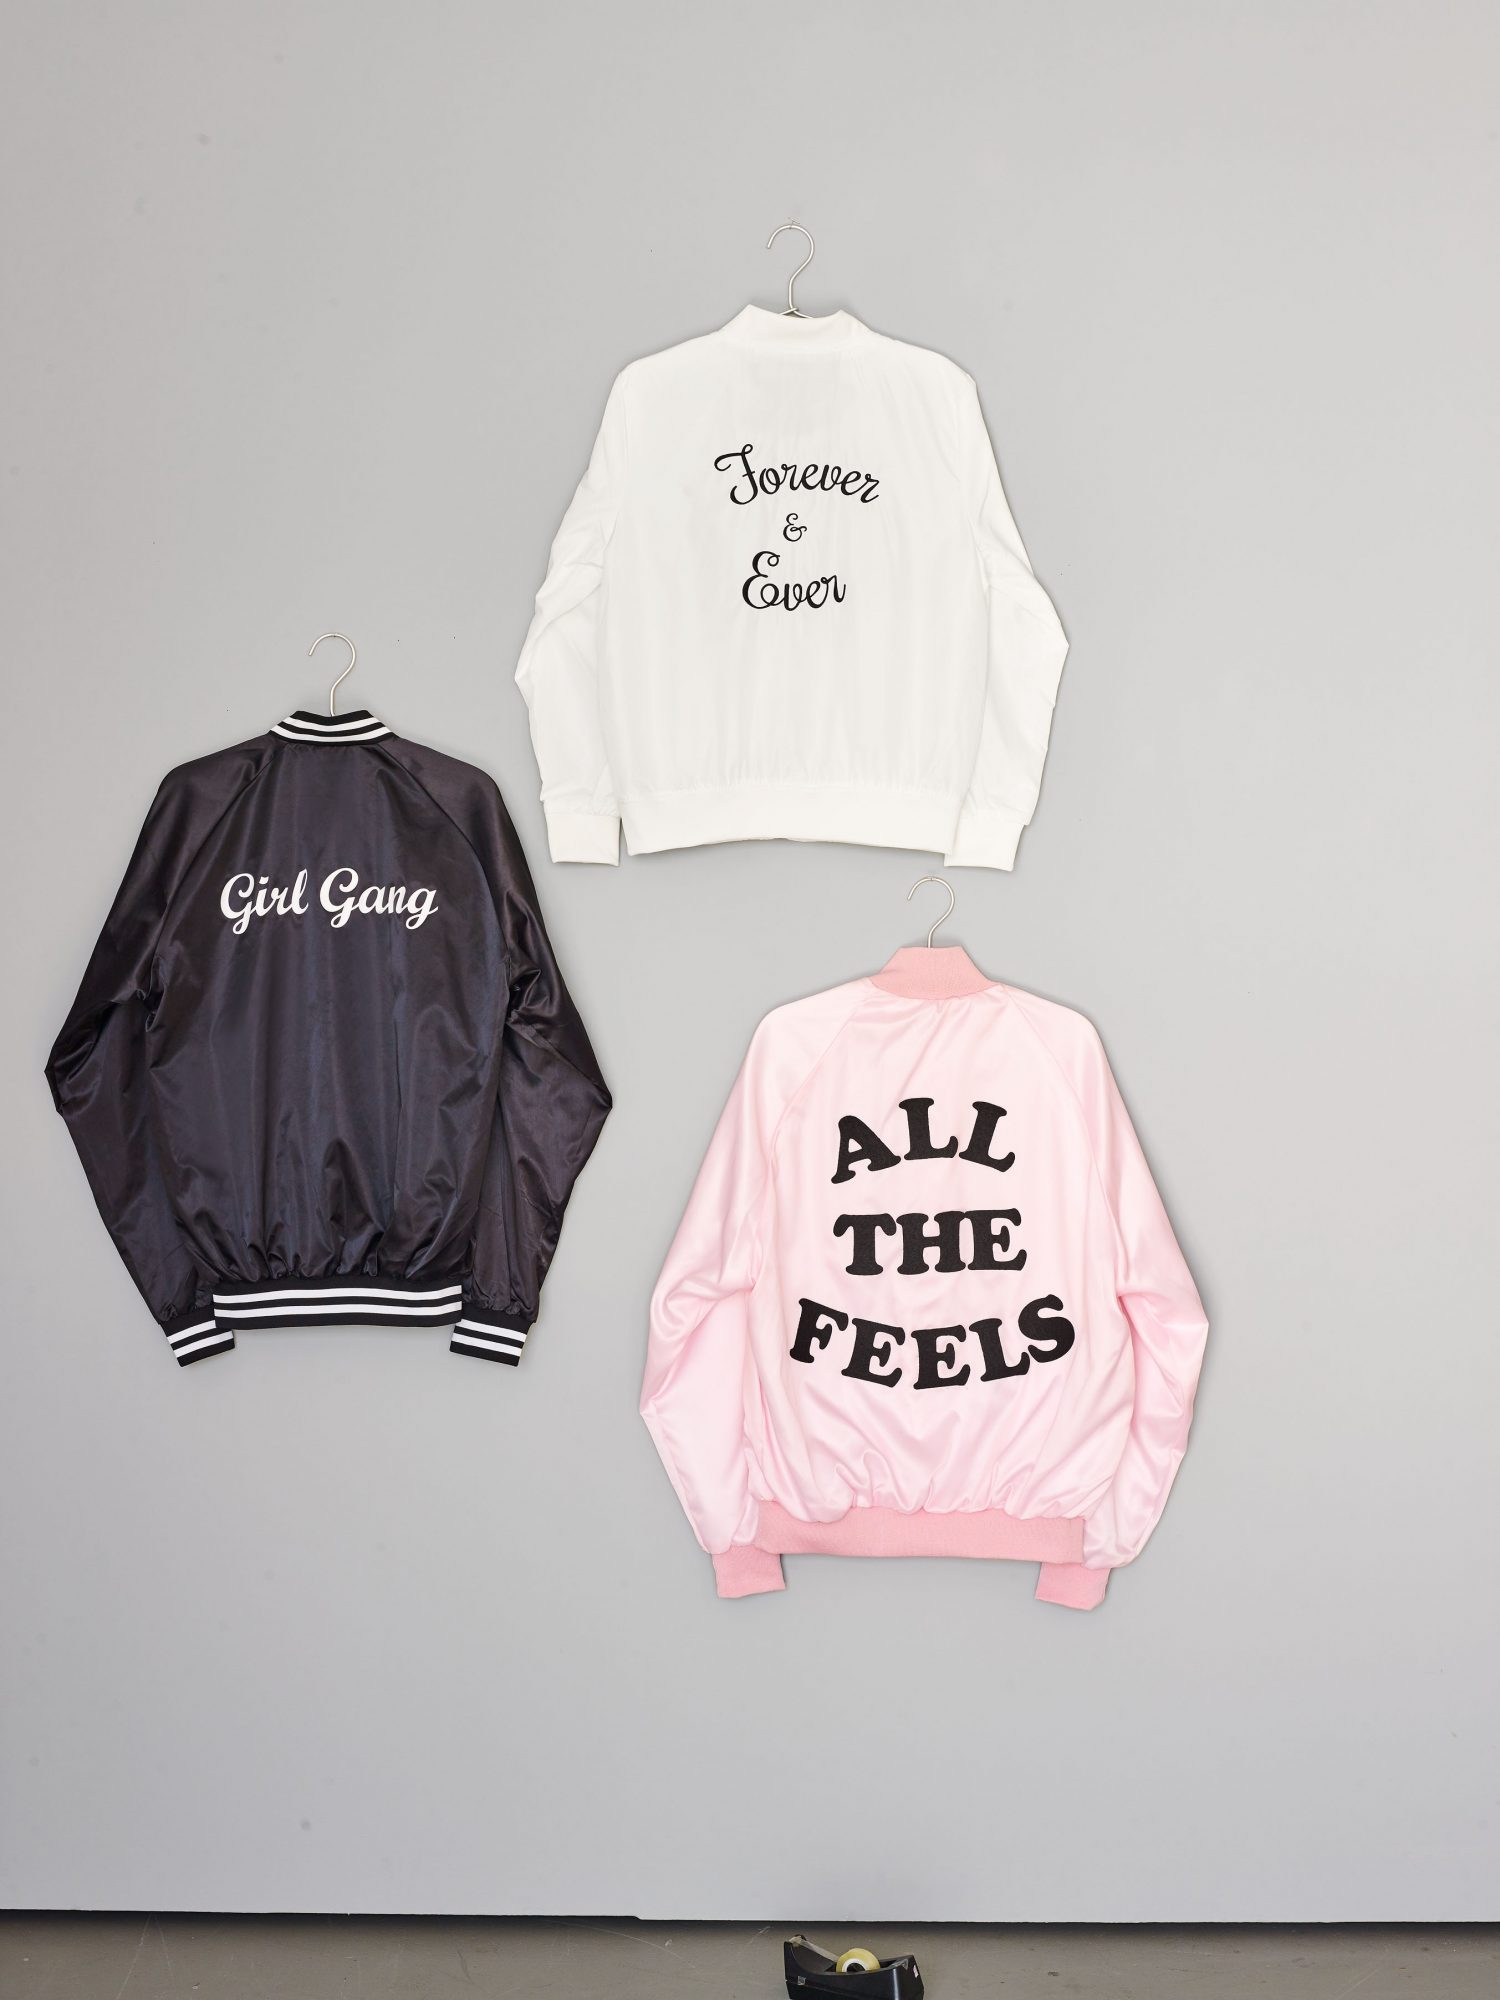 These chic jackets look both vintage and modern, and will ensure that outerwear doesn't ruin your crew's going-out outfits. Buy ones with words on them already, or customize them yourself using embroidery, heat-transfer printing, or affixable letters.